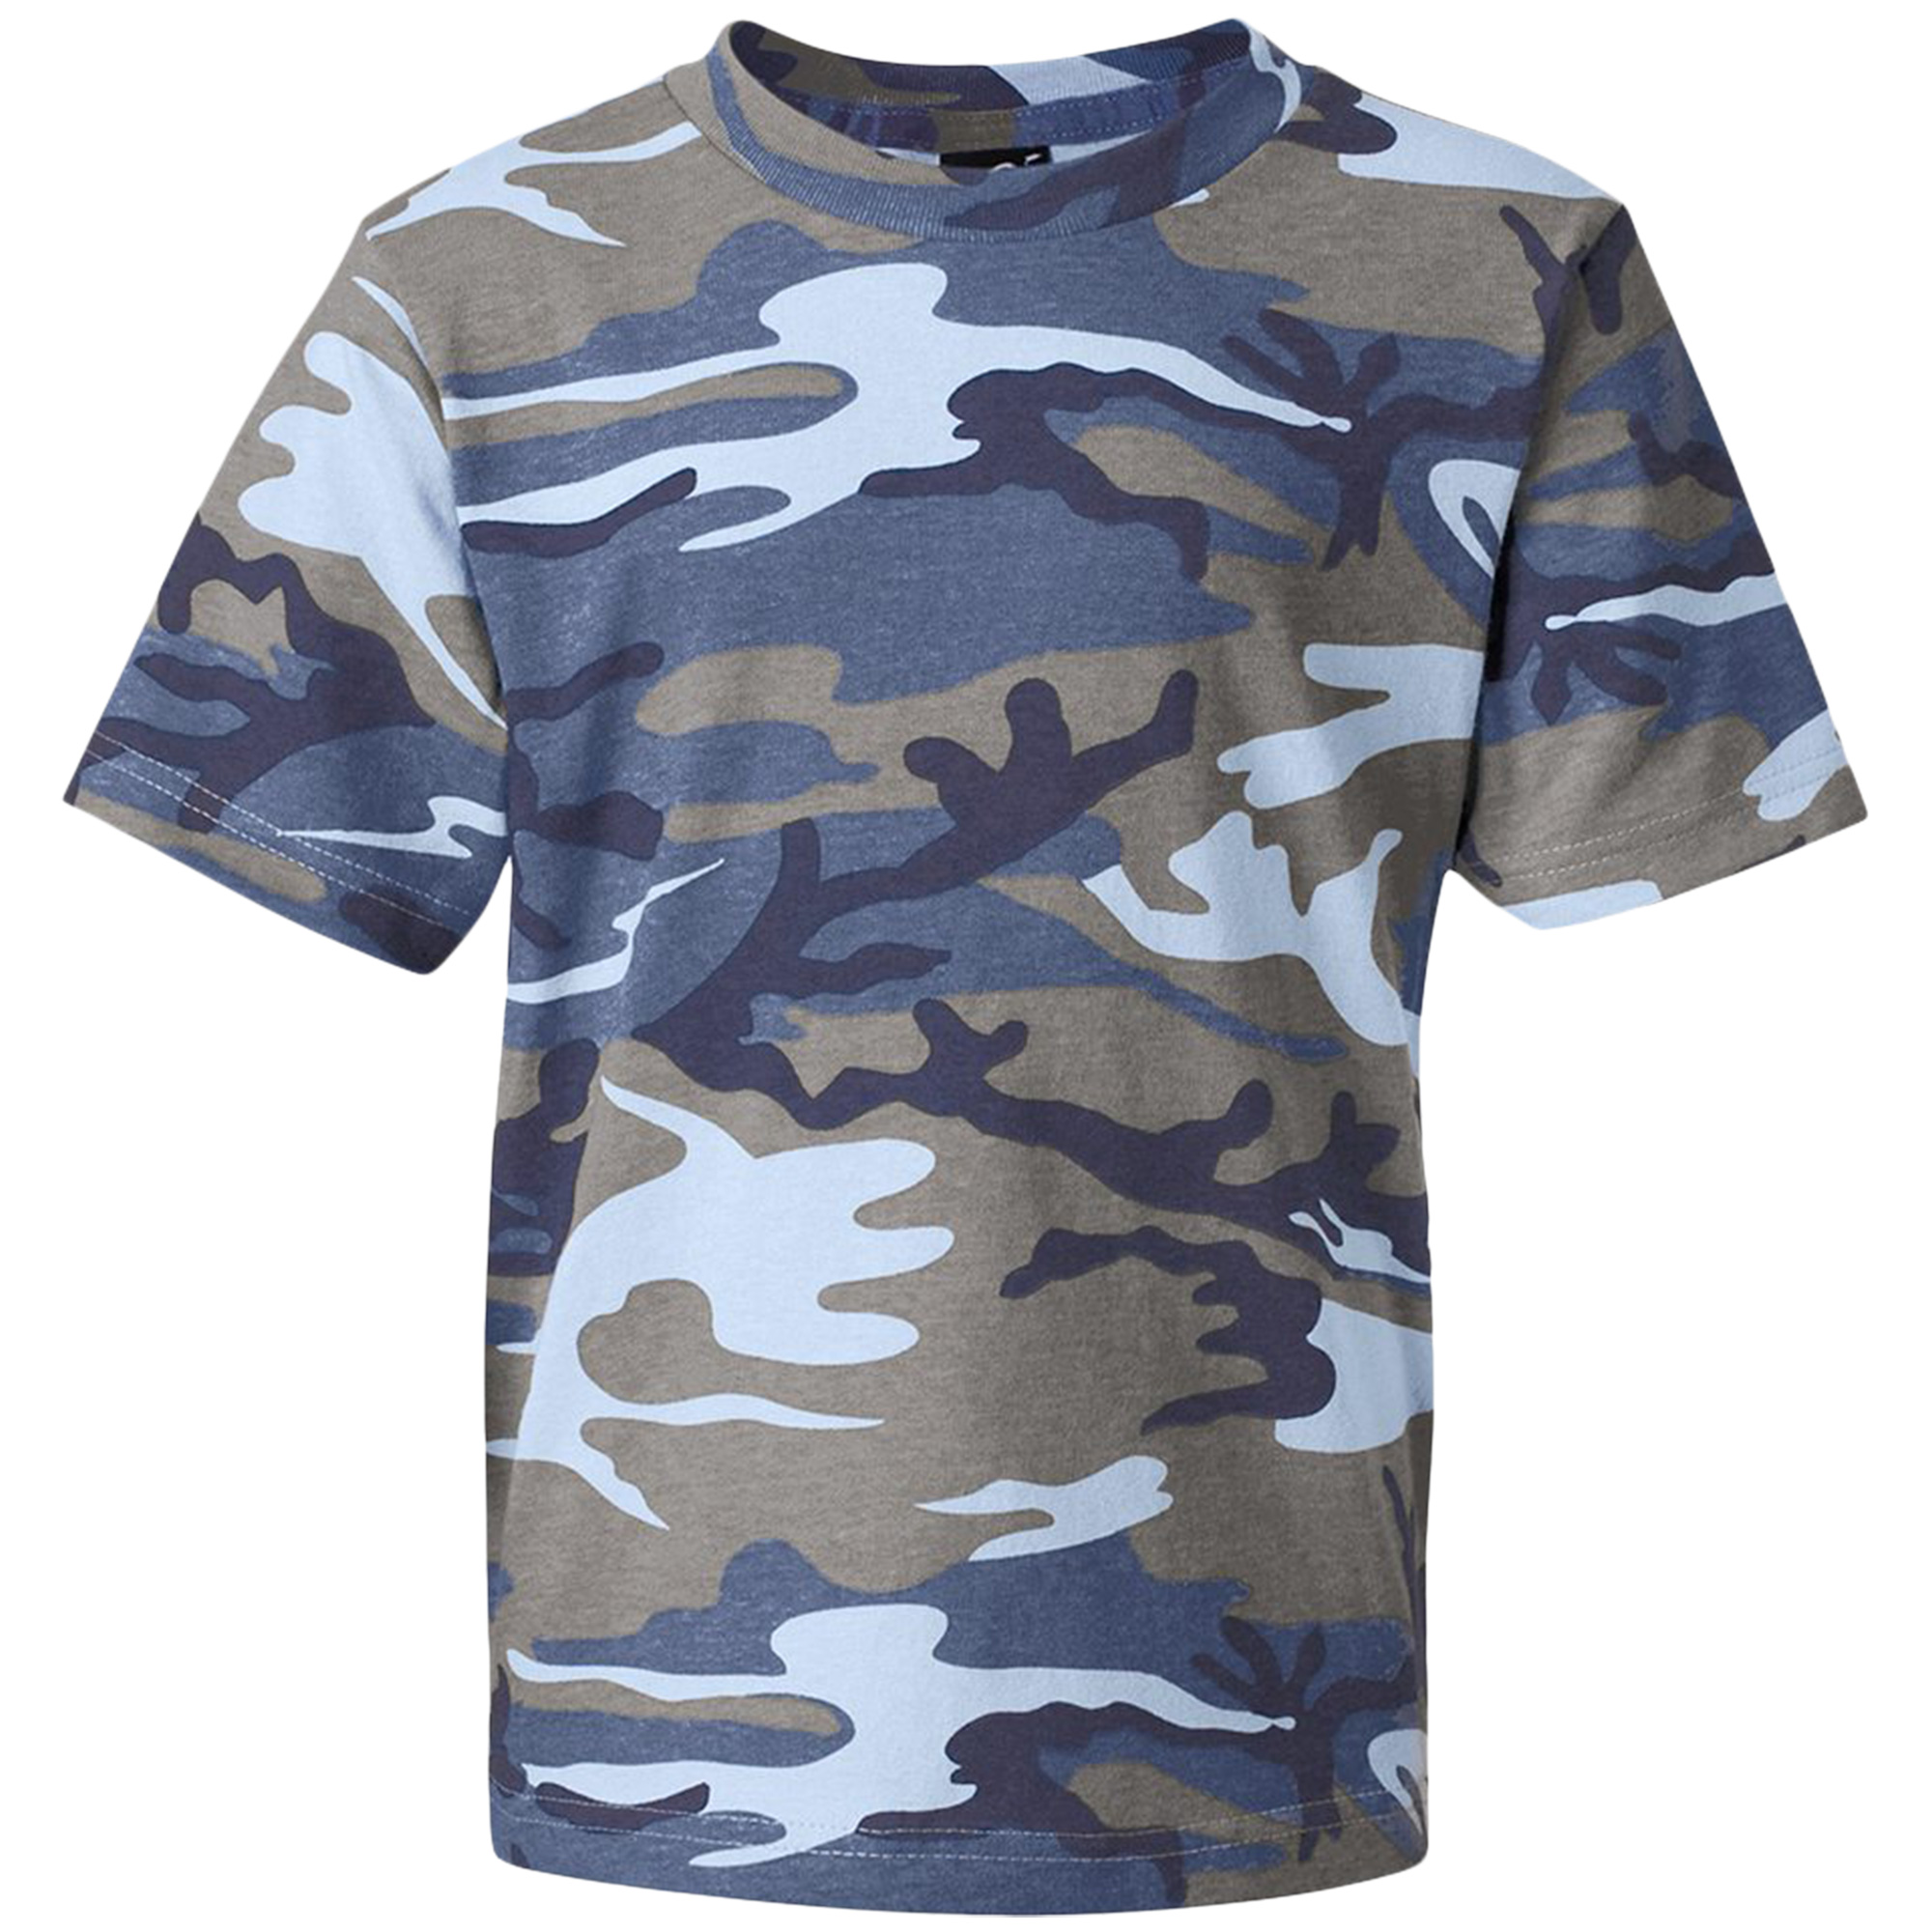 Code V 3315 Toddler's Crew Neck Camouflage T-Shirt